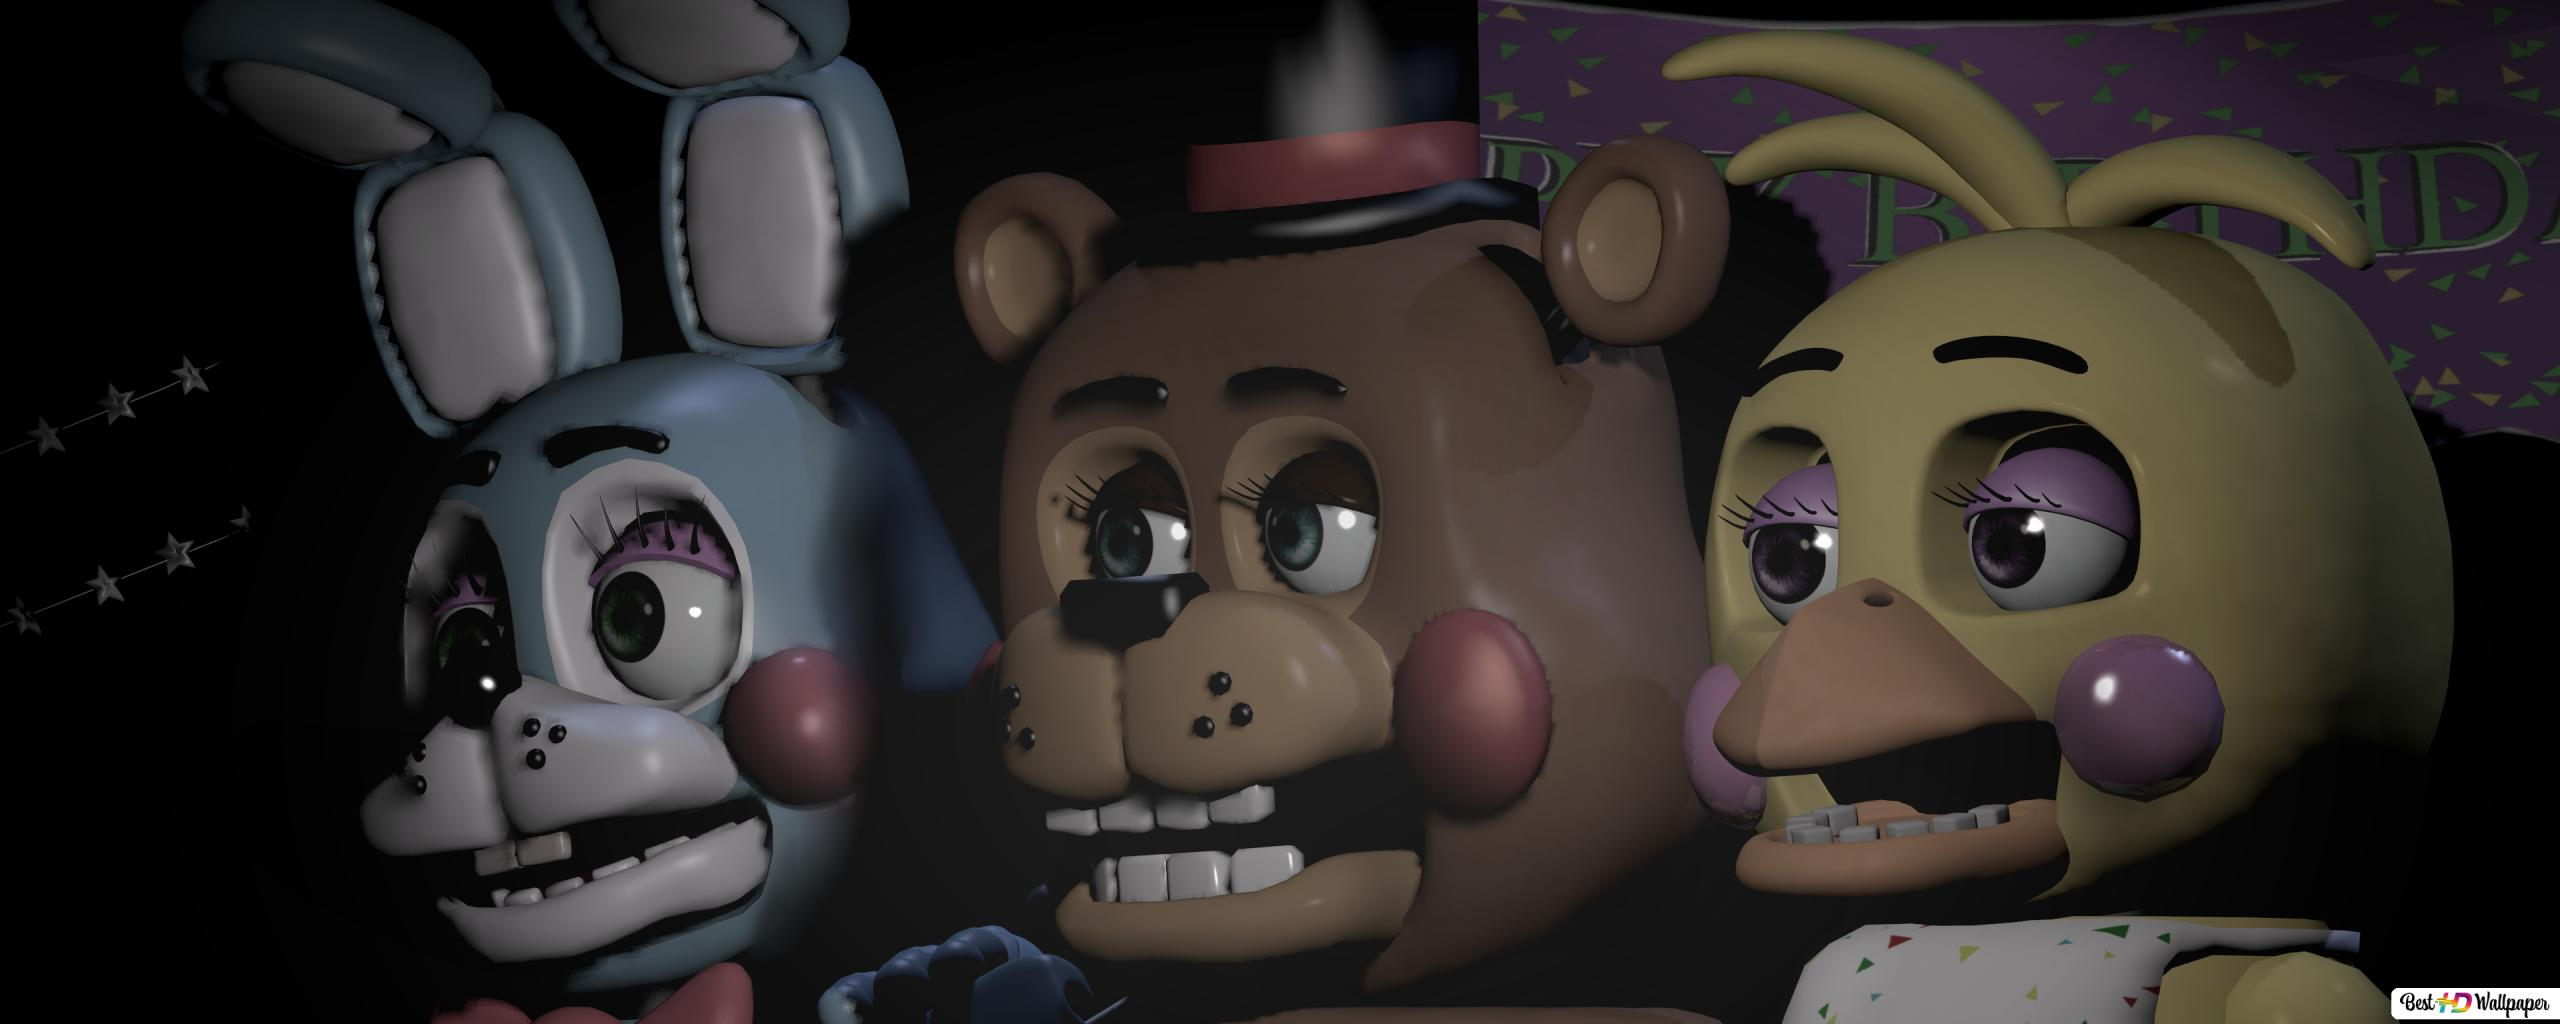 5 Nights At Freddy's Chica toy bonnie, freddy, chica of five nights at freddy's sister